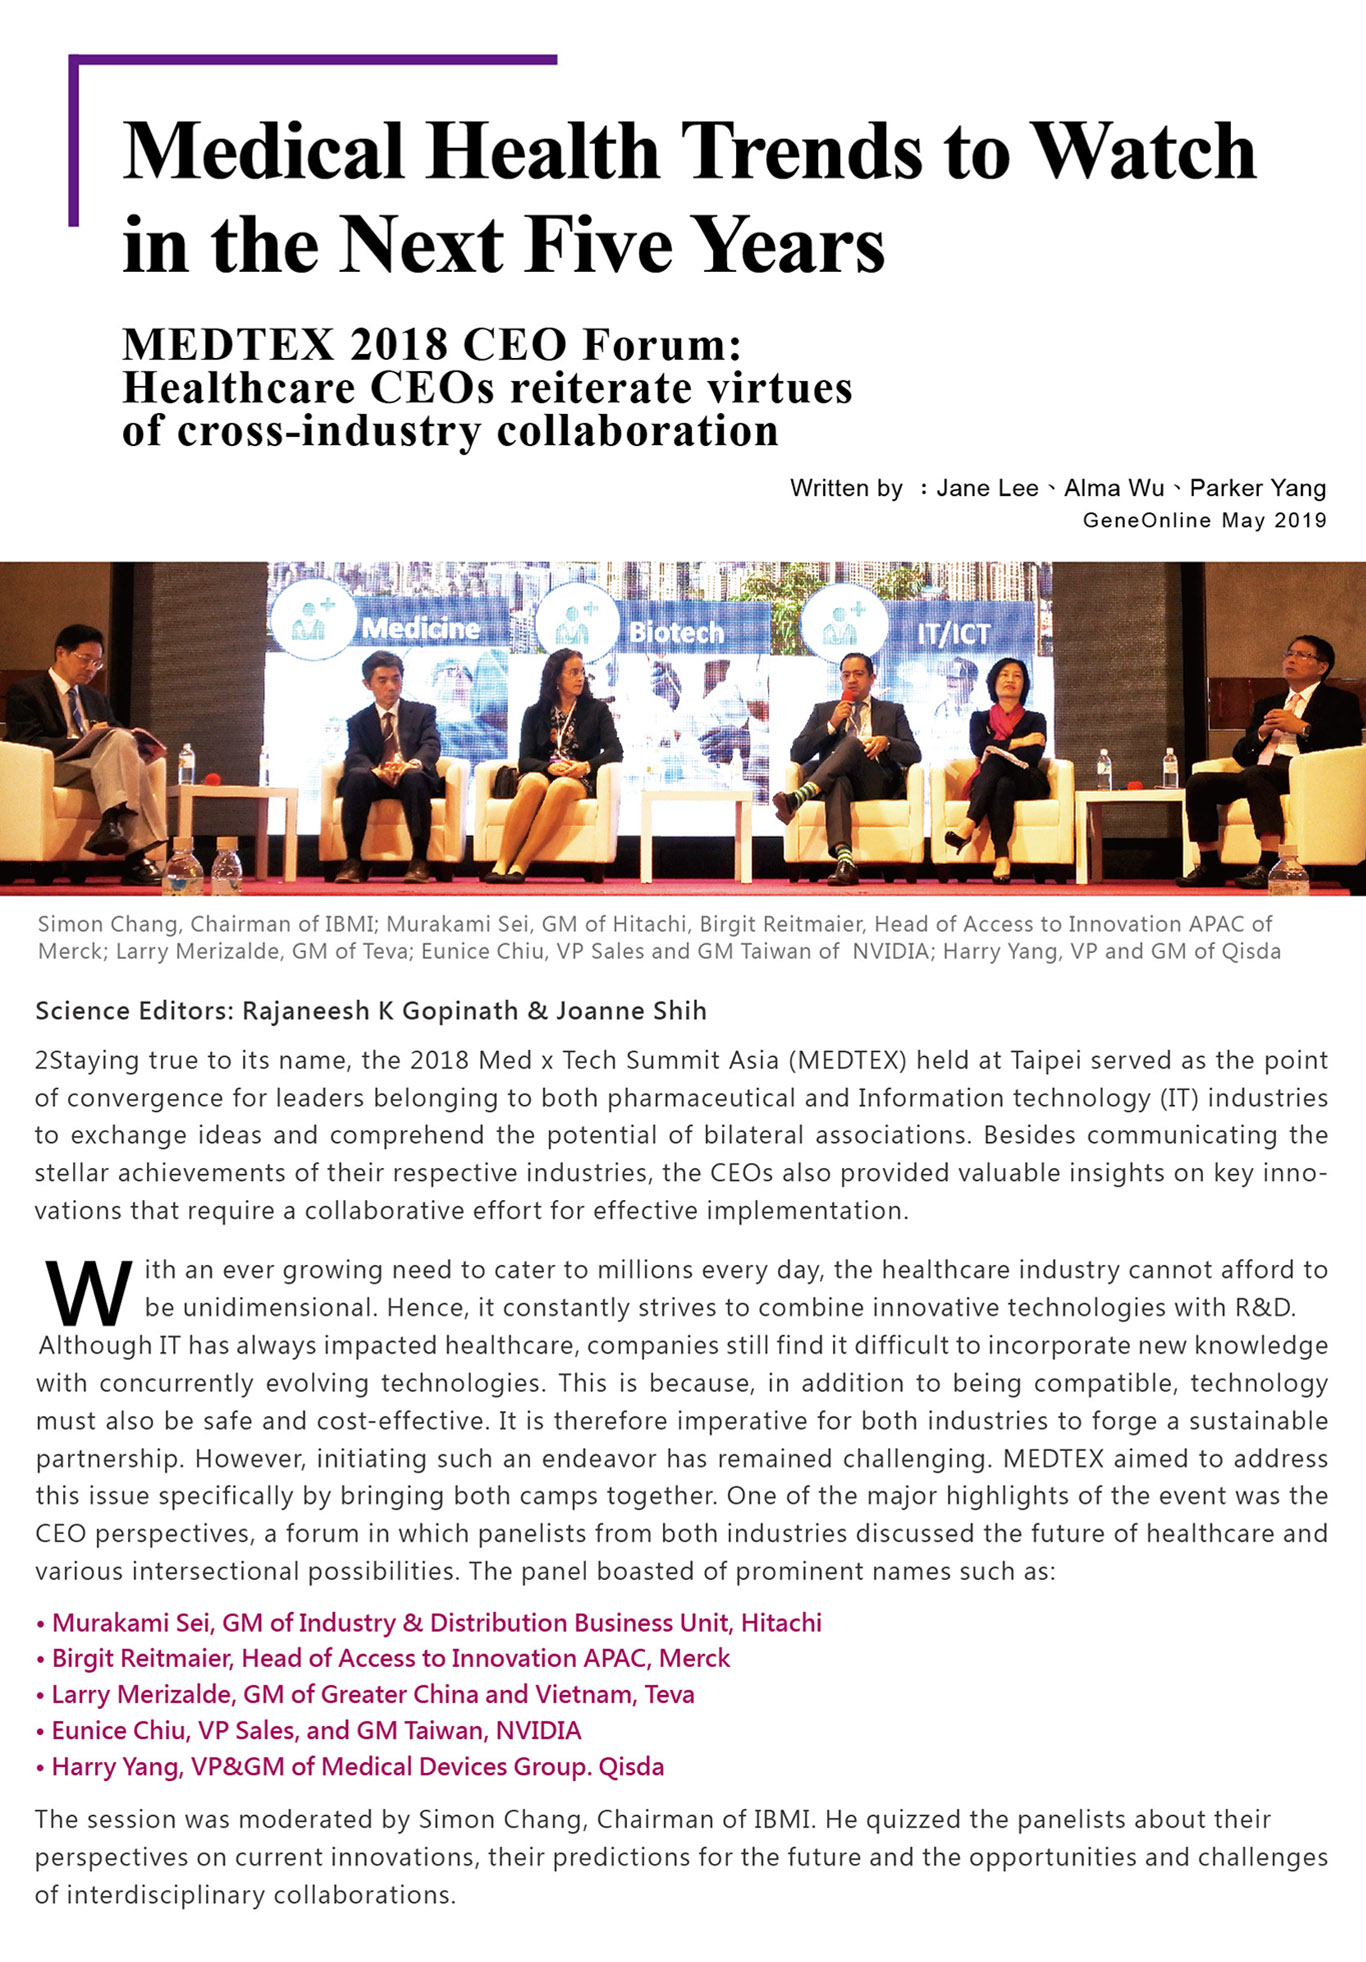 Science Editors: Rajaneesh K Gopinath & Joanne Shih Staying true to its name, the 2018 Med x Tech Summit Asia (MEDTEX) held at Taipei served as the point of convergence for leaders belonging to both pharmaceutical and Information technology (IT) industries to exchange ideas and comprehend the potential of bilateral associations. Besides communicating the stellar achievements of their respective industries, the CEOs also provided valuable insights on key innovations that require a collaborative effort for effective implementation. With an ever growing need to cater to millions every day, the healthcare industry cannot afford to be unidimensional. Hence, it constantly strives to combine innovative technologies with R&D. Although IT has always impacted healthcare, companies still find it difficult to incorporate new knowledge with concurrently evolving technologies. This is because, in addition to being compatible, technology must also be safe and cost-effective. It is therefore imperative for both industries to forge a sustainable partnership. However, initiating such an endeavor has remained challenging. MEDTEX aimed to address this issue specifically by bringing both camps together. One of the major highlights of the event was the CEO perspectives, a forum in which panelists from both industries discussed the future of healthcare and various intersectional possibilities. The panel boasted of prominent names such as: